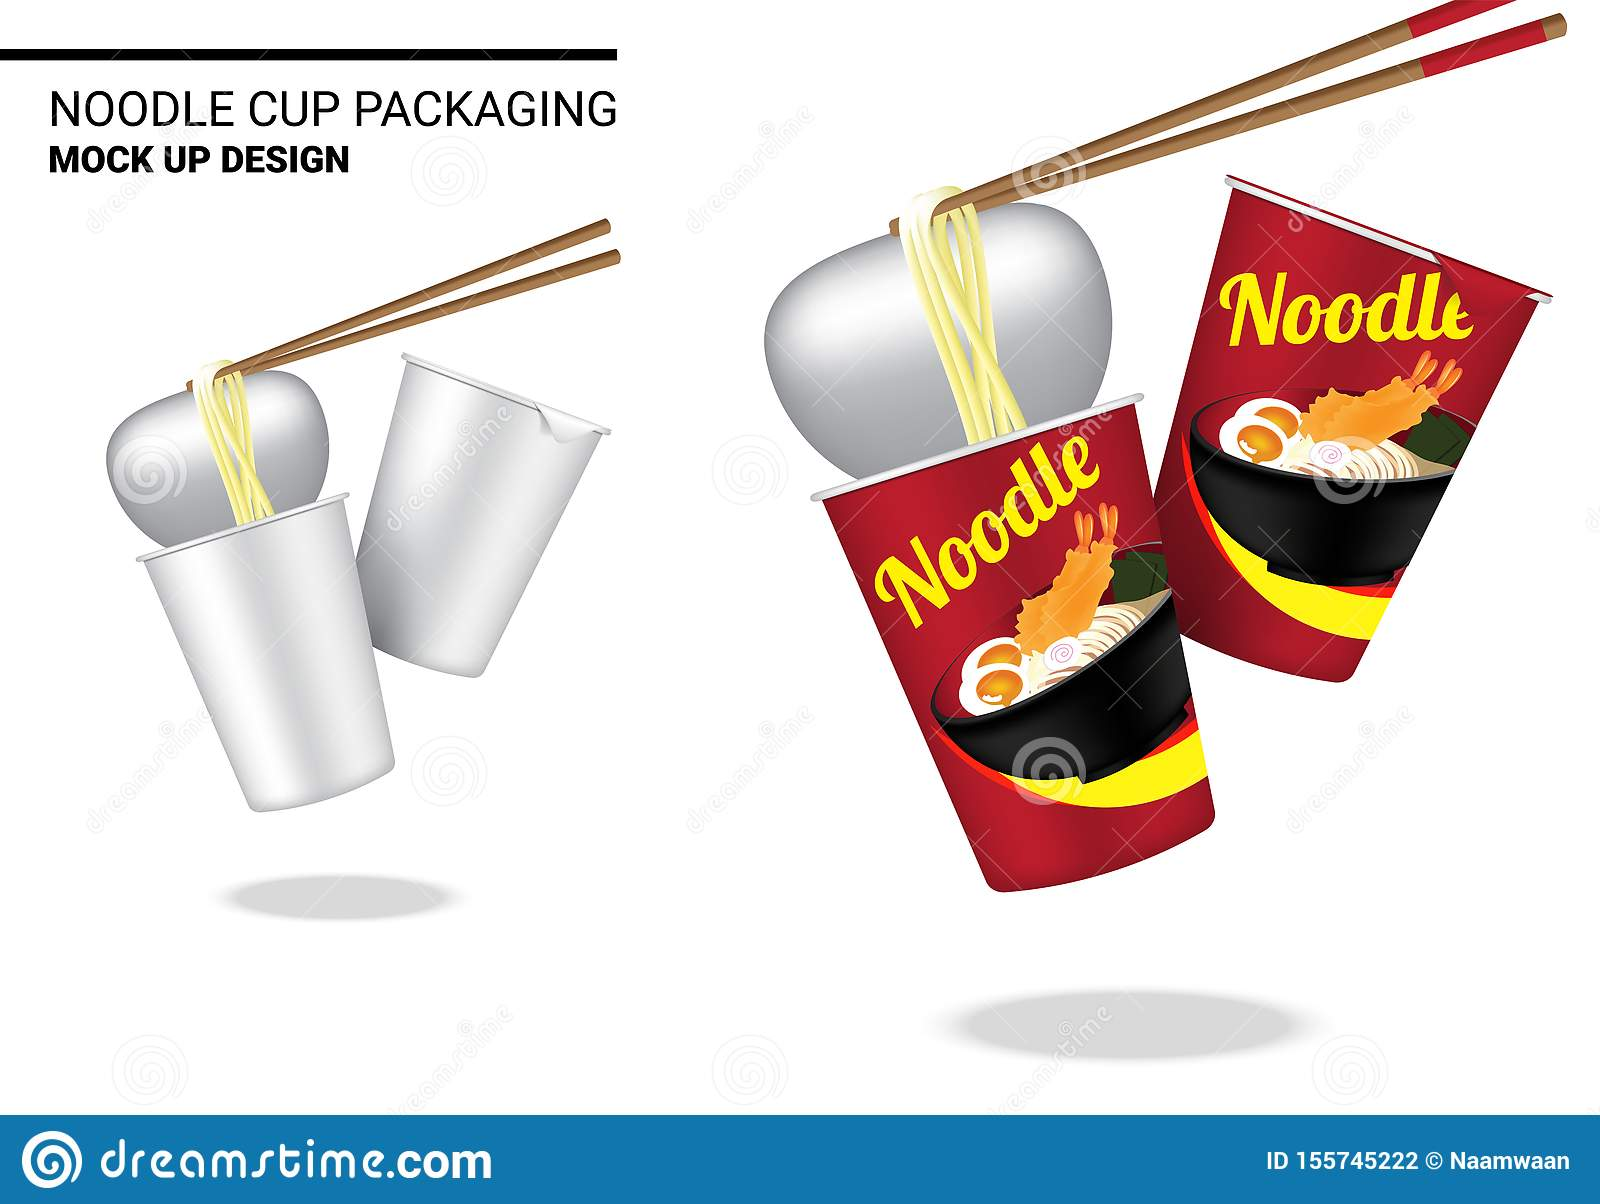 Mock Up 3D Realistic Design Hot Cup Noodle Packaging Product on White Background Illustration